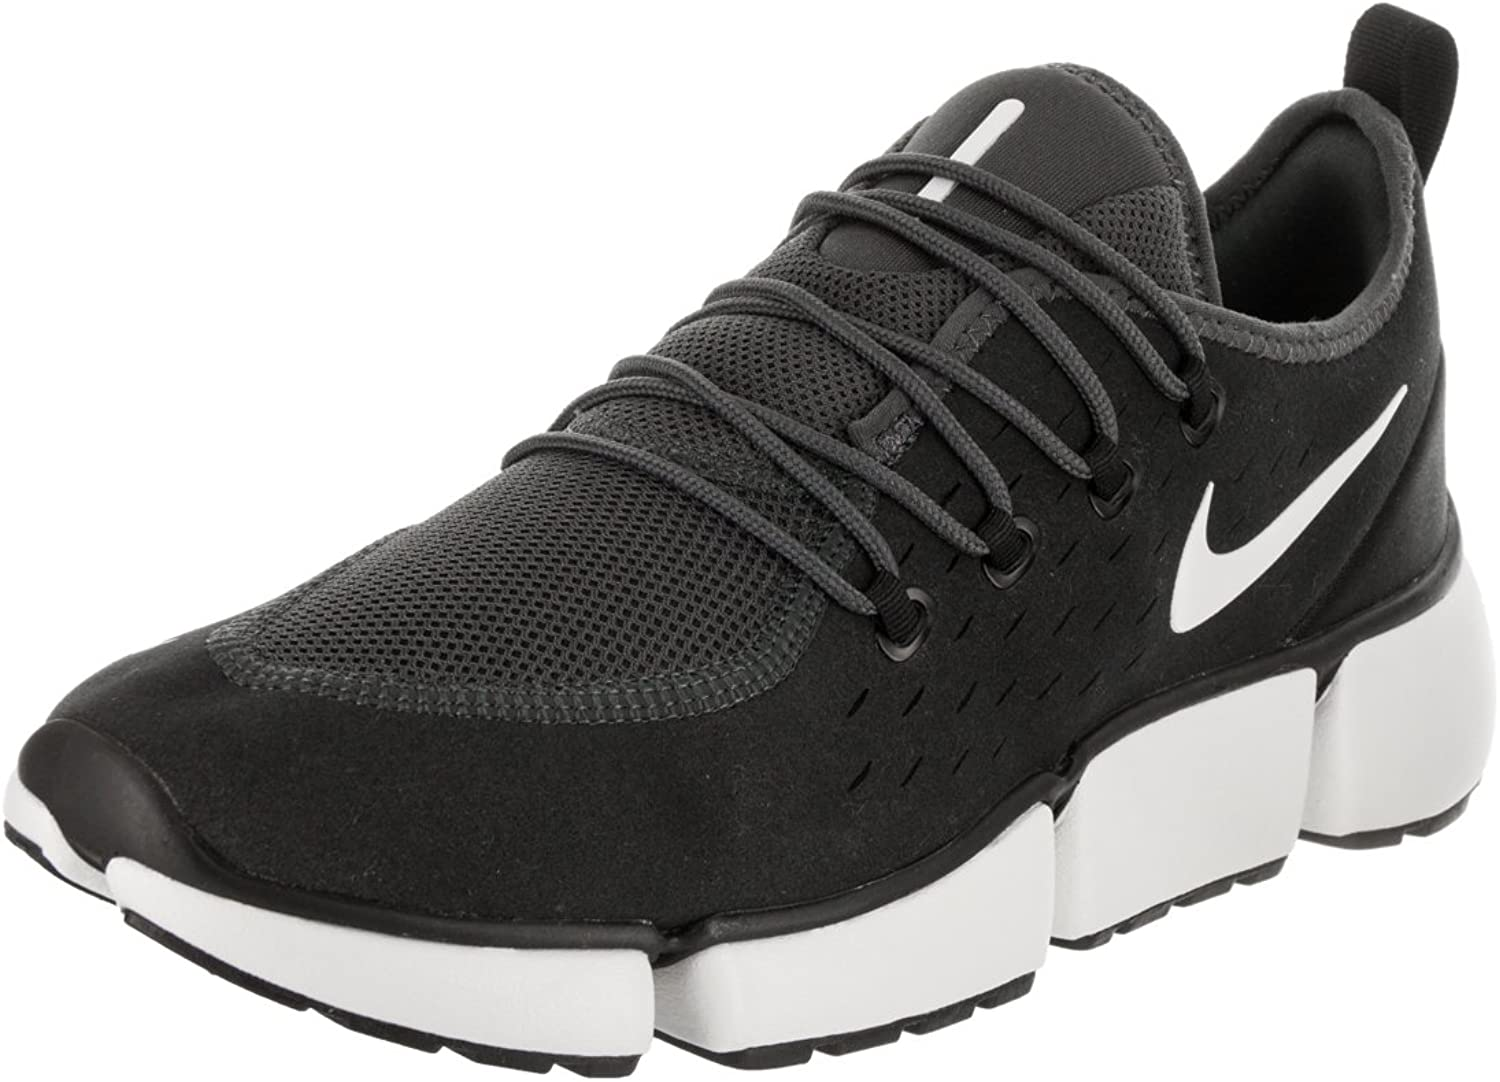 Nike Men's Pocket Fly DM Casual shoes